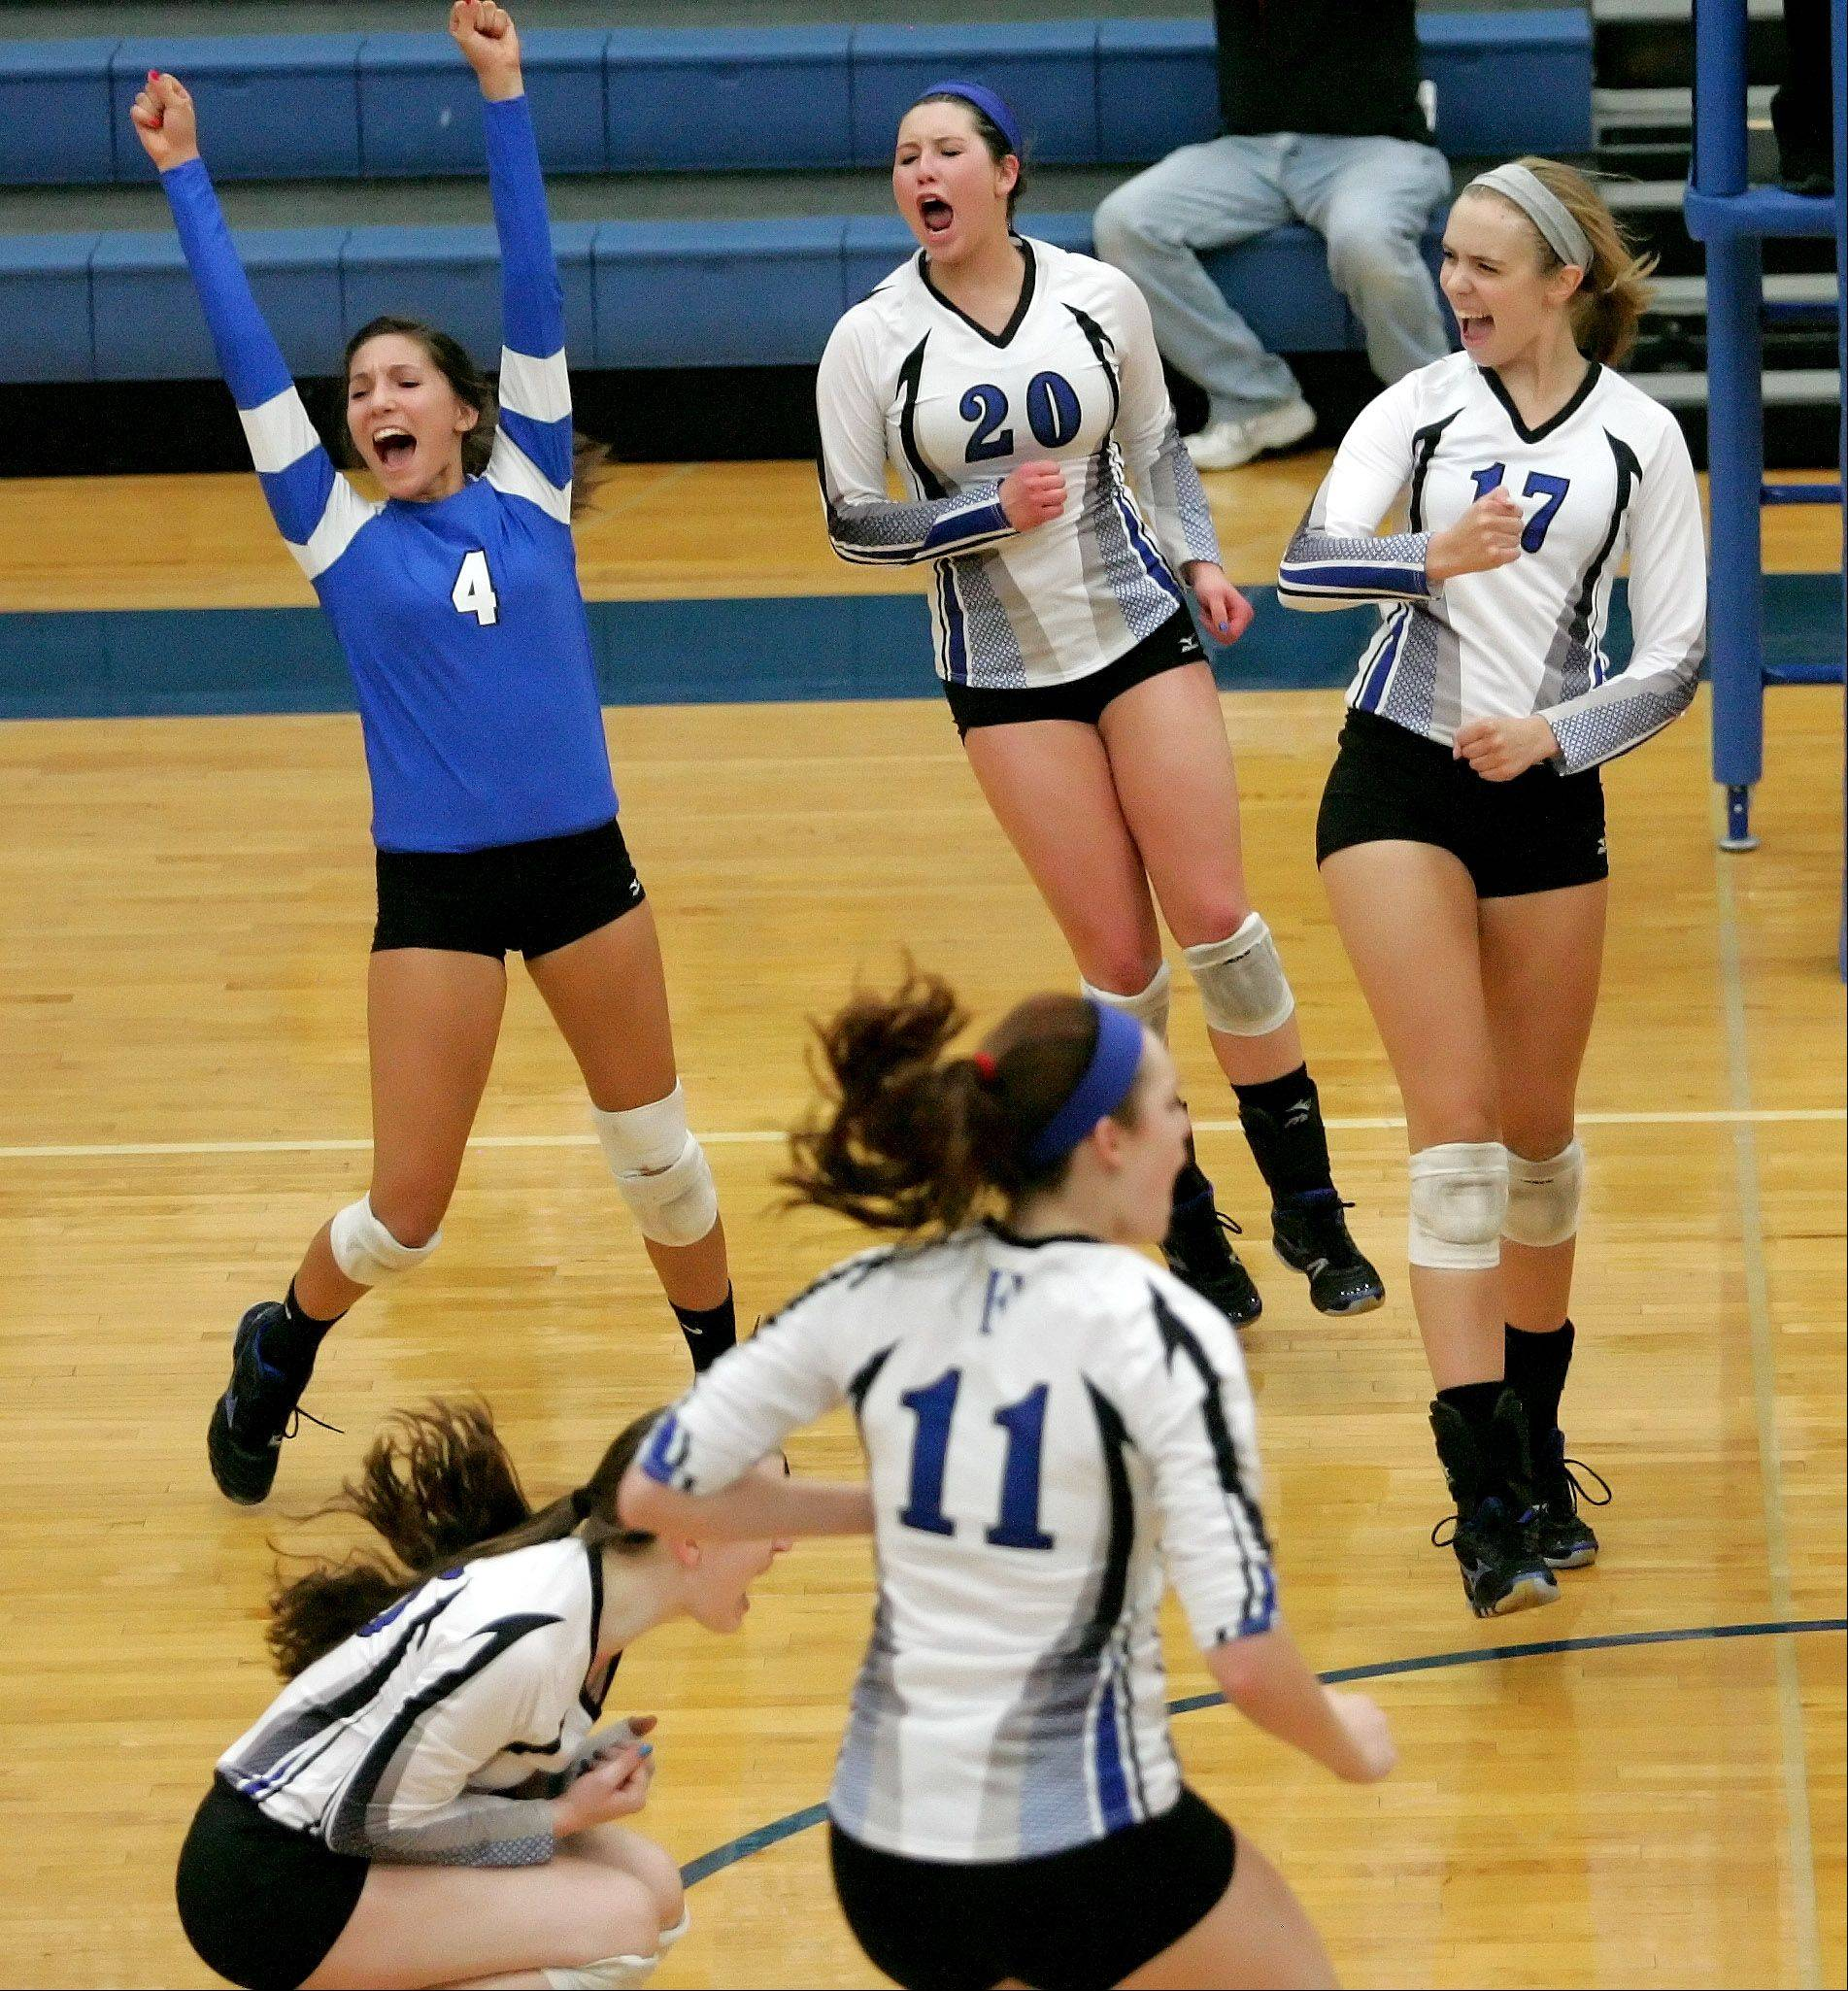 St. Francis players celebrate a point over Rosary during girls volleyball action Monday in Wheaton.